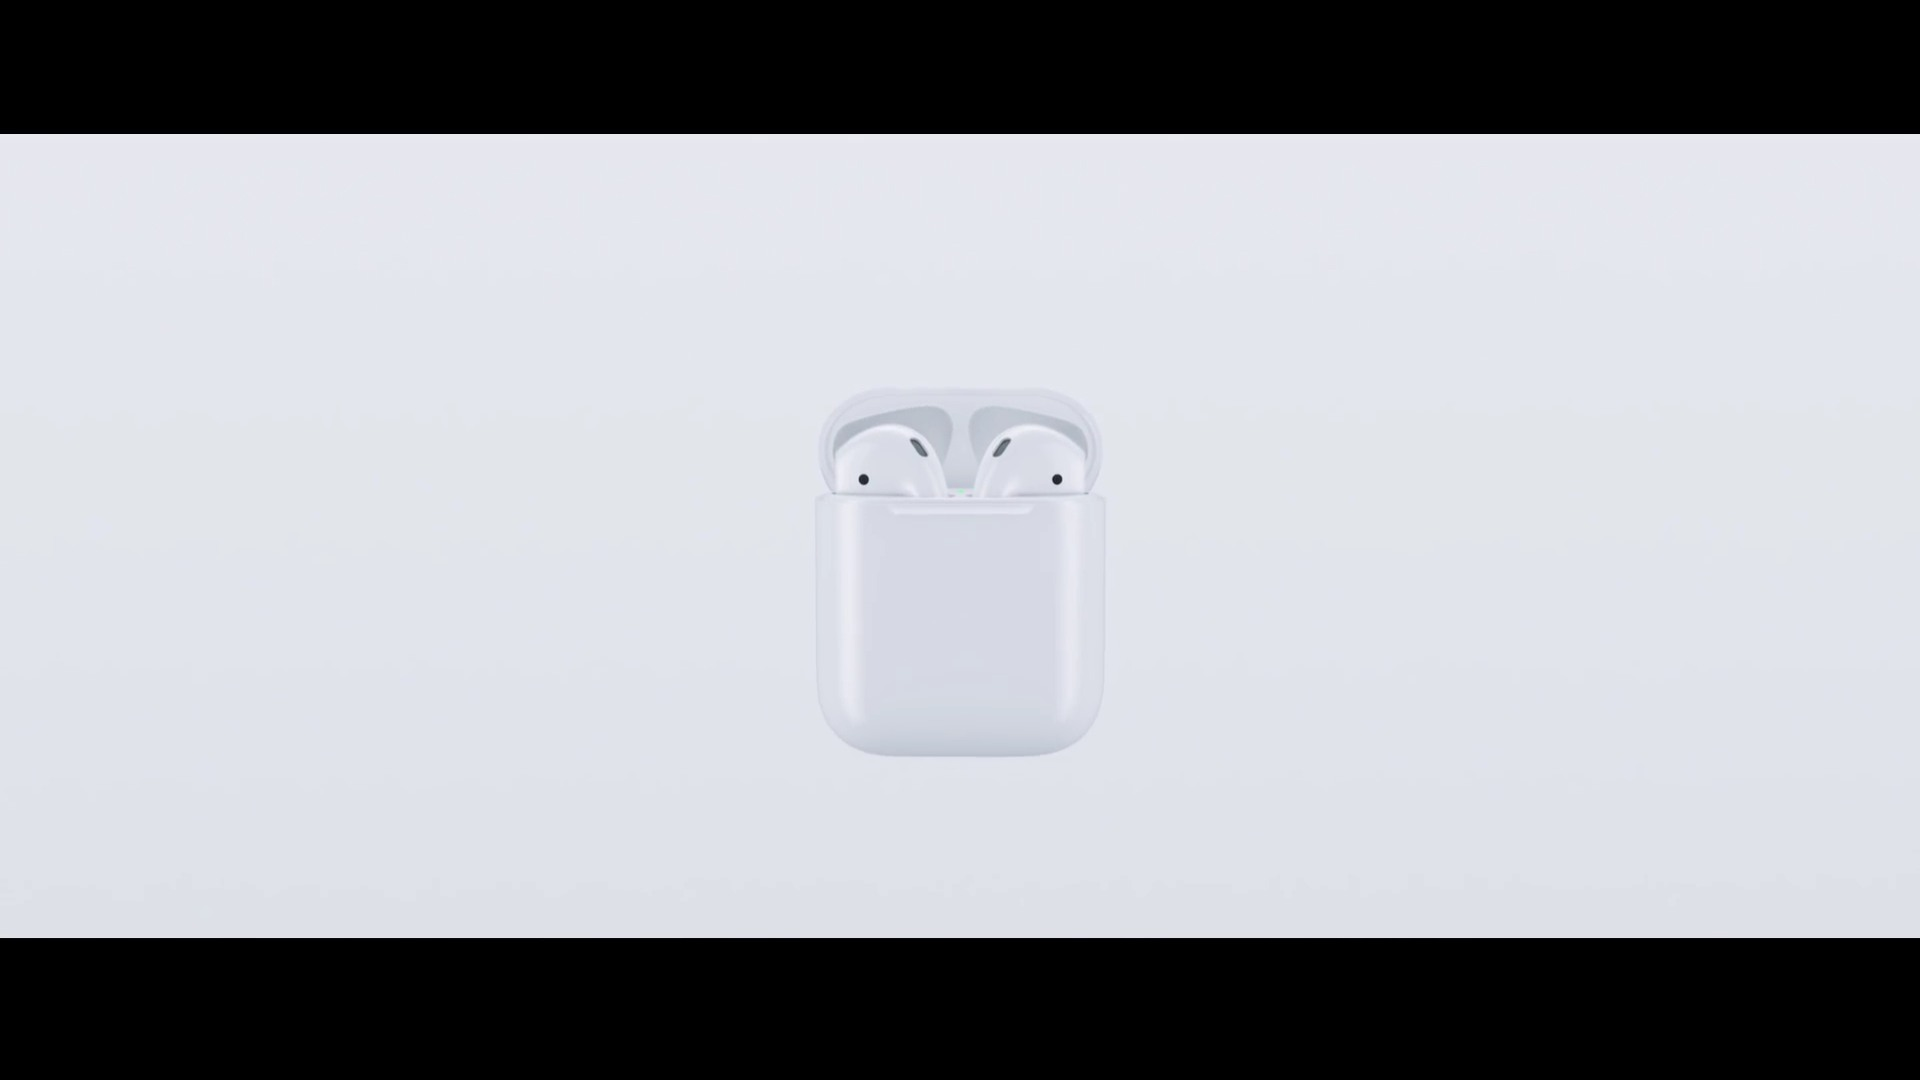 apple-airpods-youtu-be-rdthx15sxiu-2